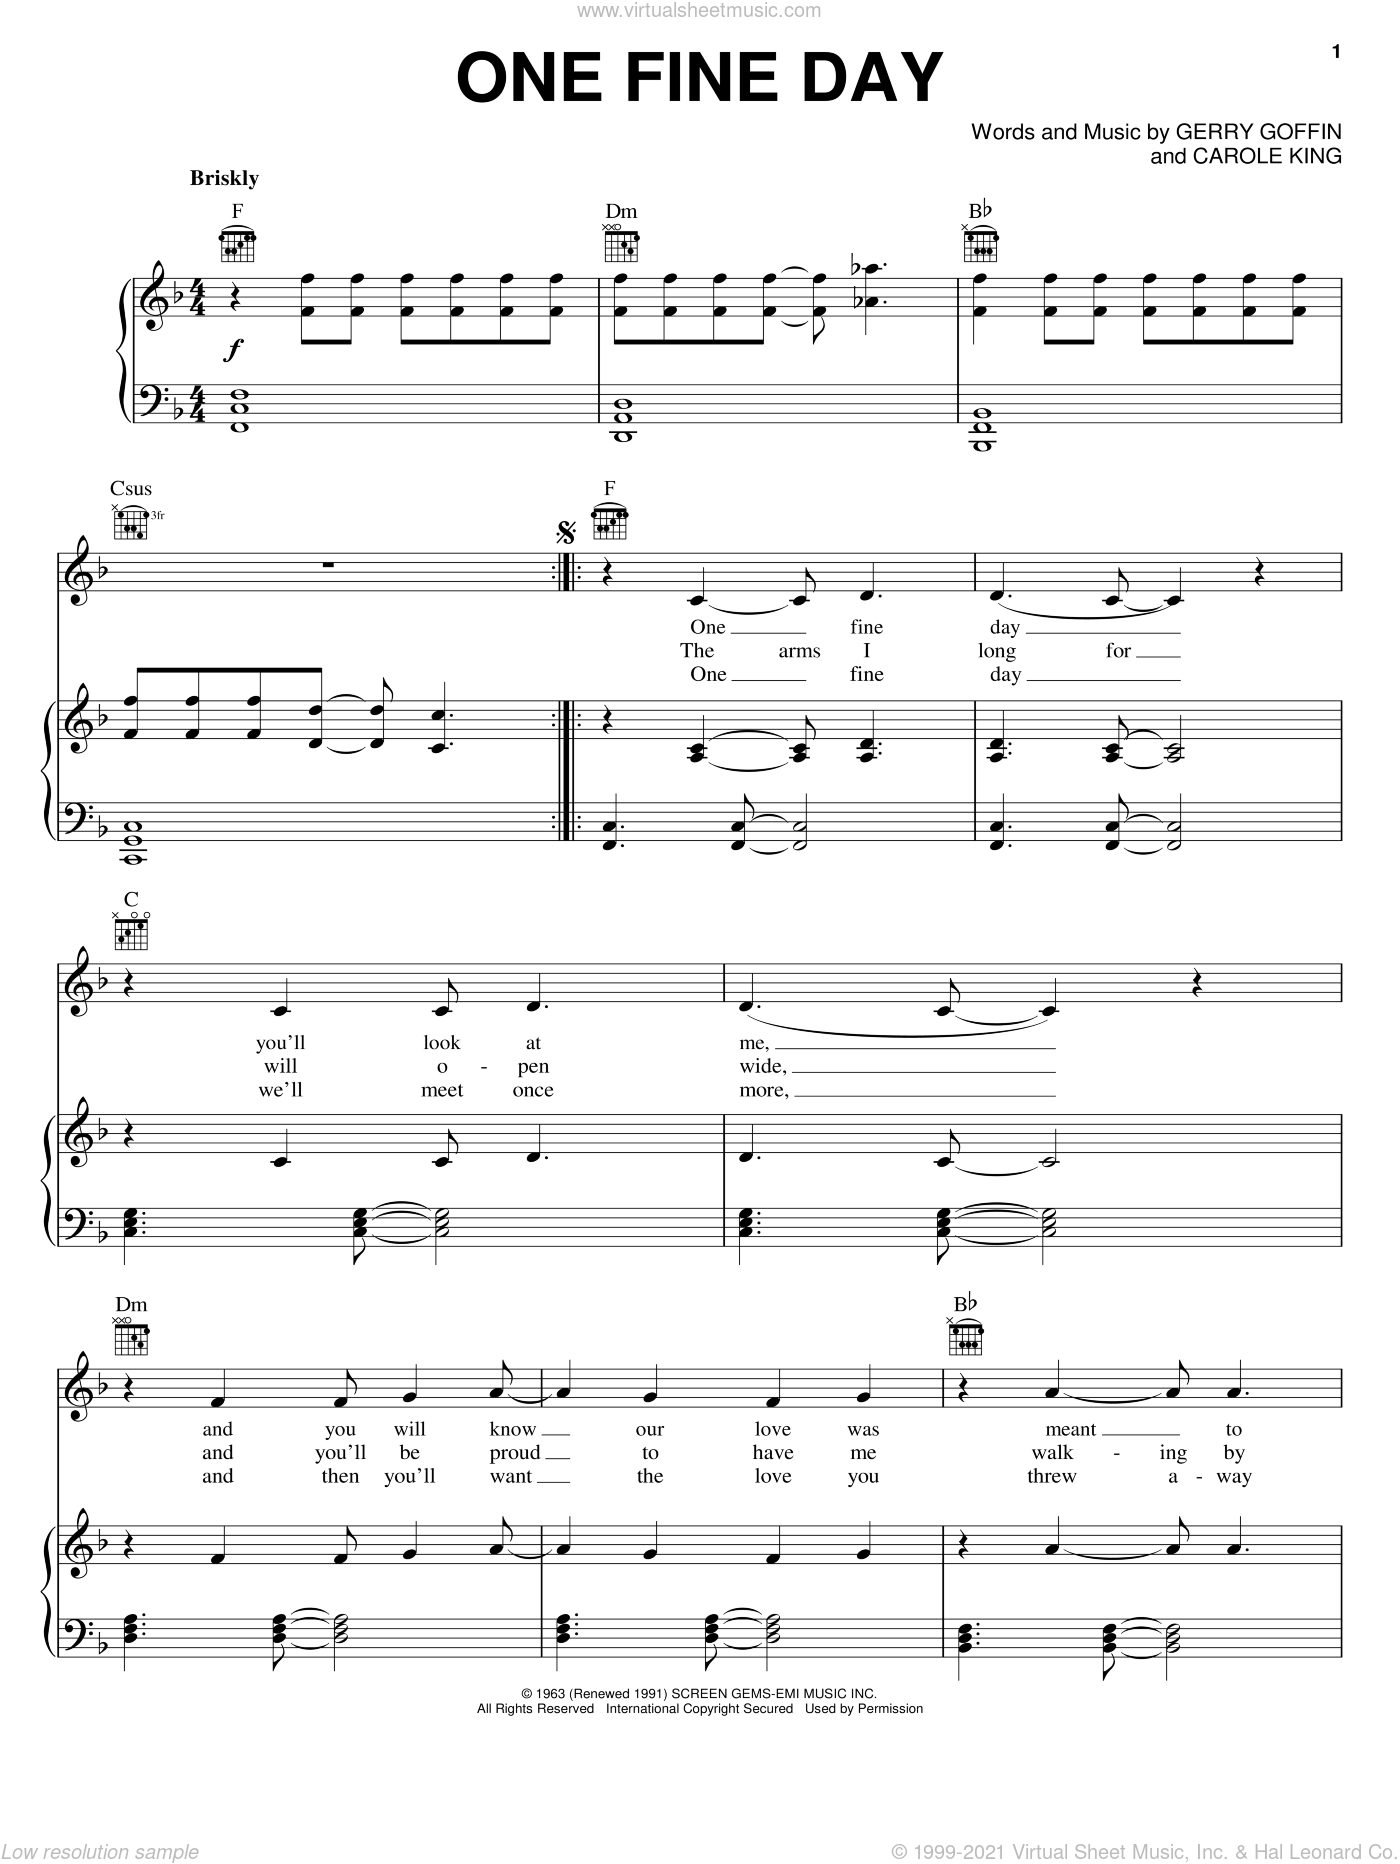 One Fine Day sheet music for voice, piano or guitar by Rita Coolidge, The Chiffons, Carole King and Gerry Goffin, intermediate voice, piano or guitar. Score Image Preview.